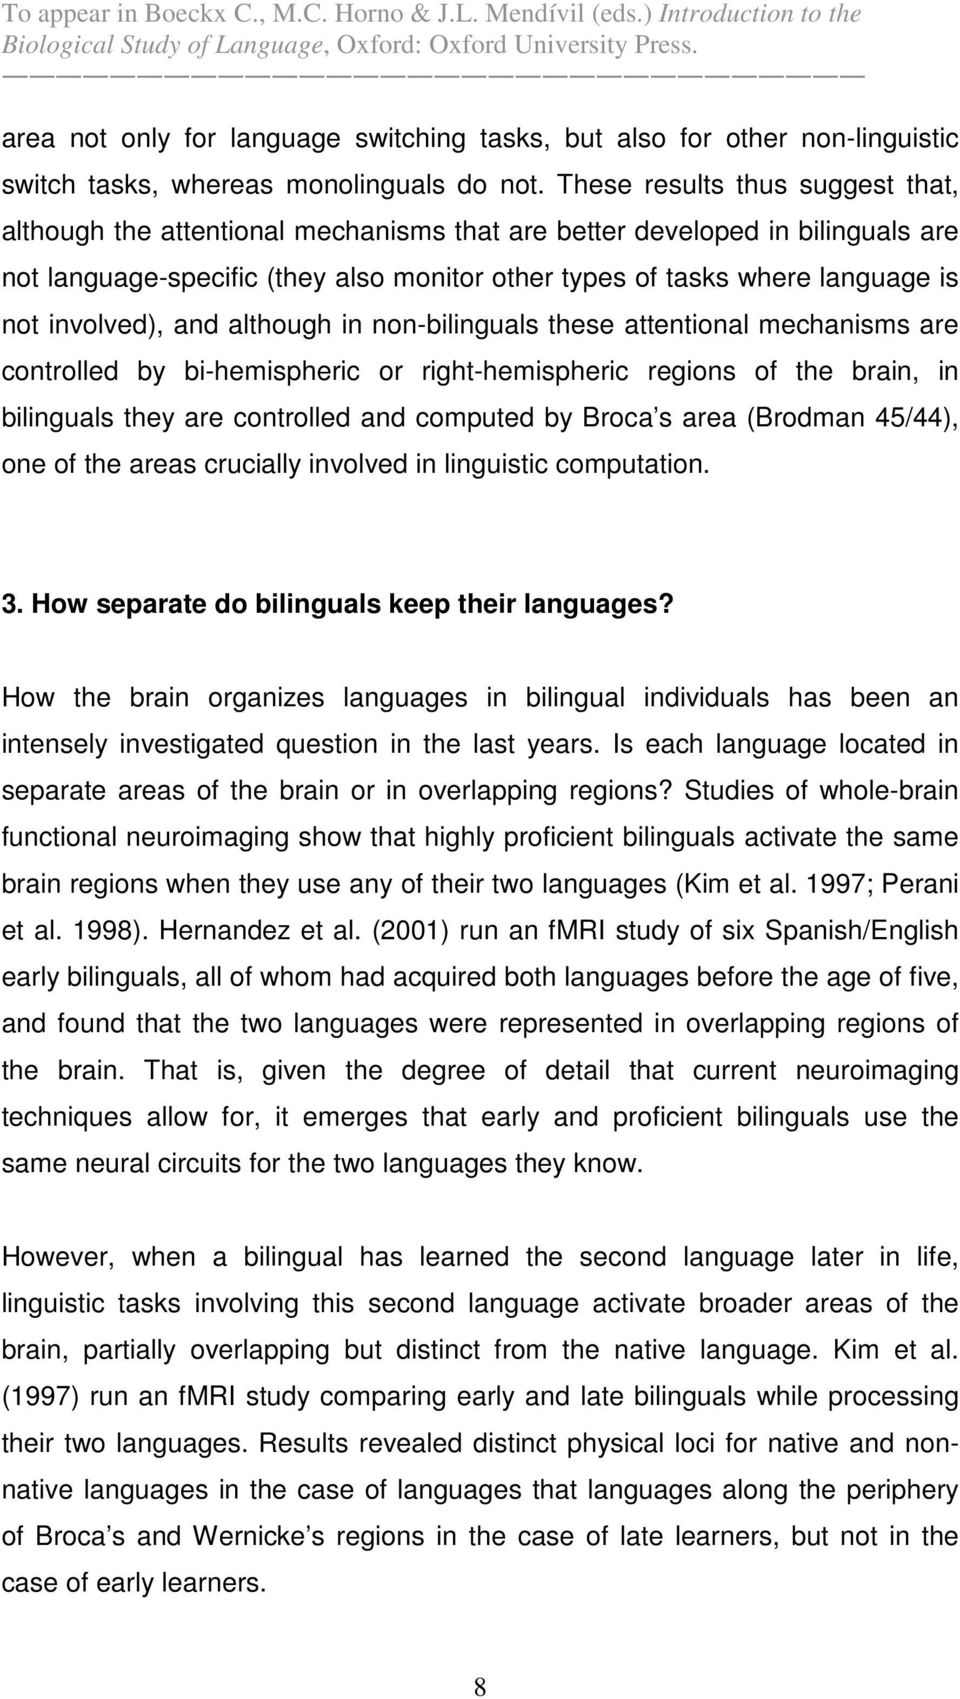 involved), and although in non-bilinguals these attentional mechanisms are controlled by bi-hemispheric or right-hemispheric regions of the brain, in bilinguals they are controlled and computed by